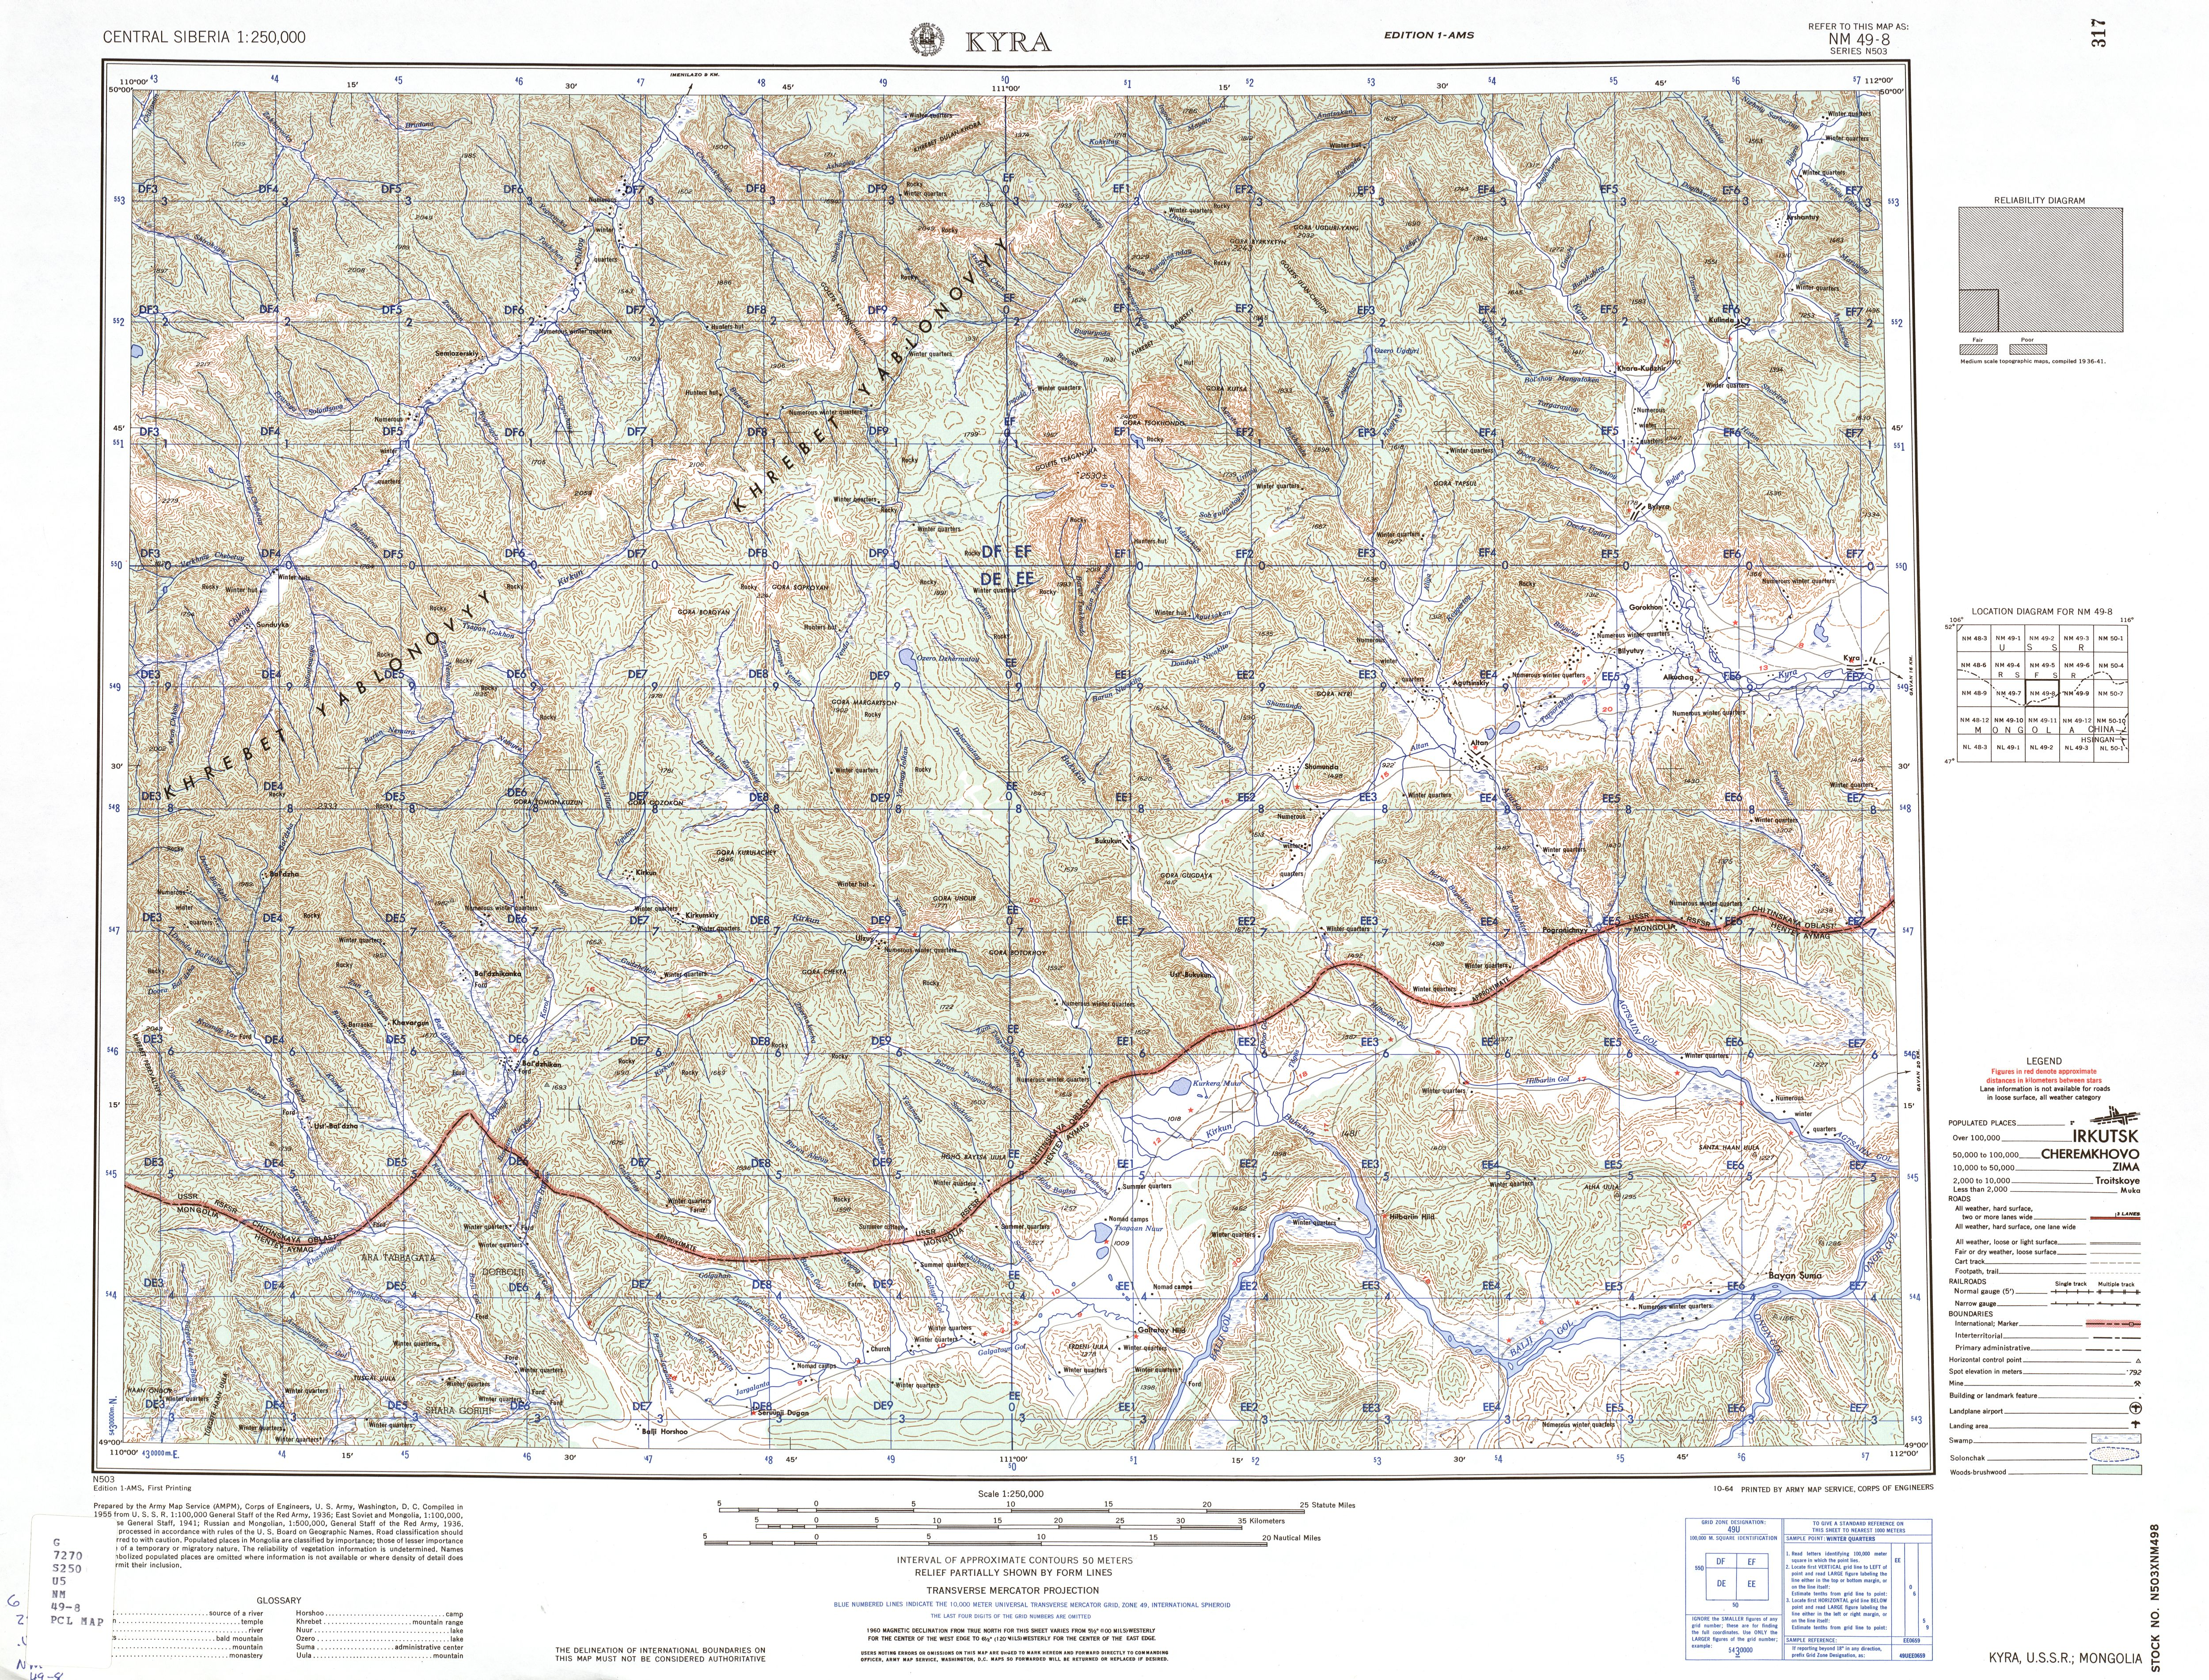 Central Siberia Ams Topographic Maps Perry Castaneda Map